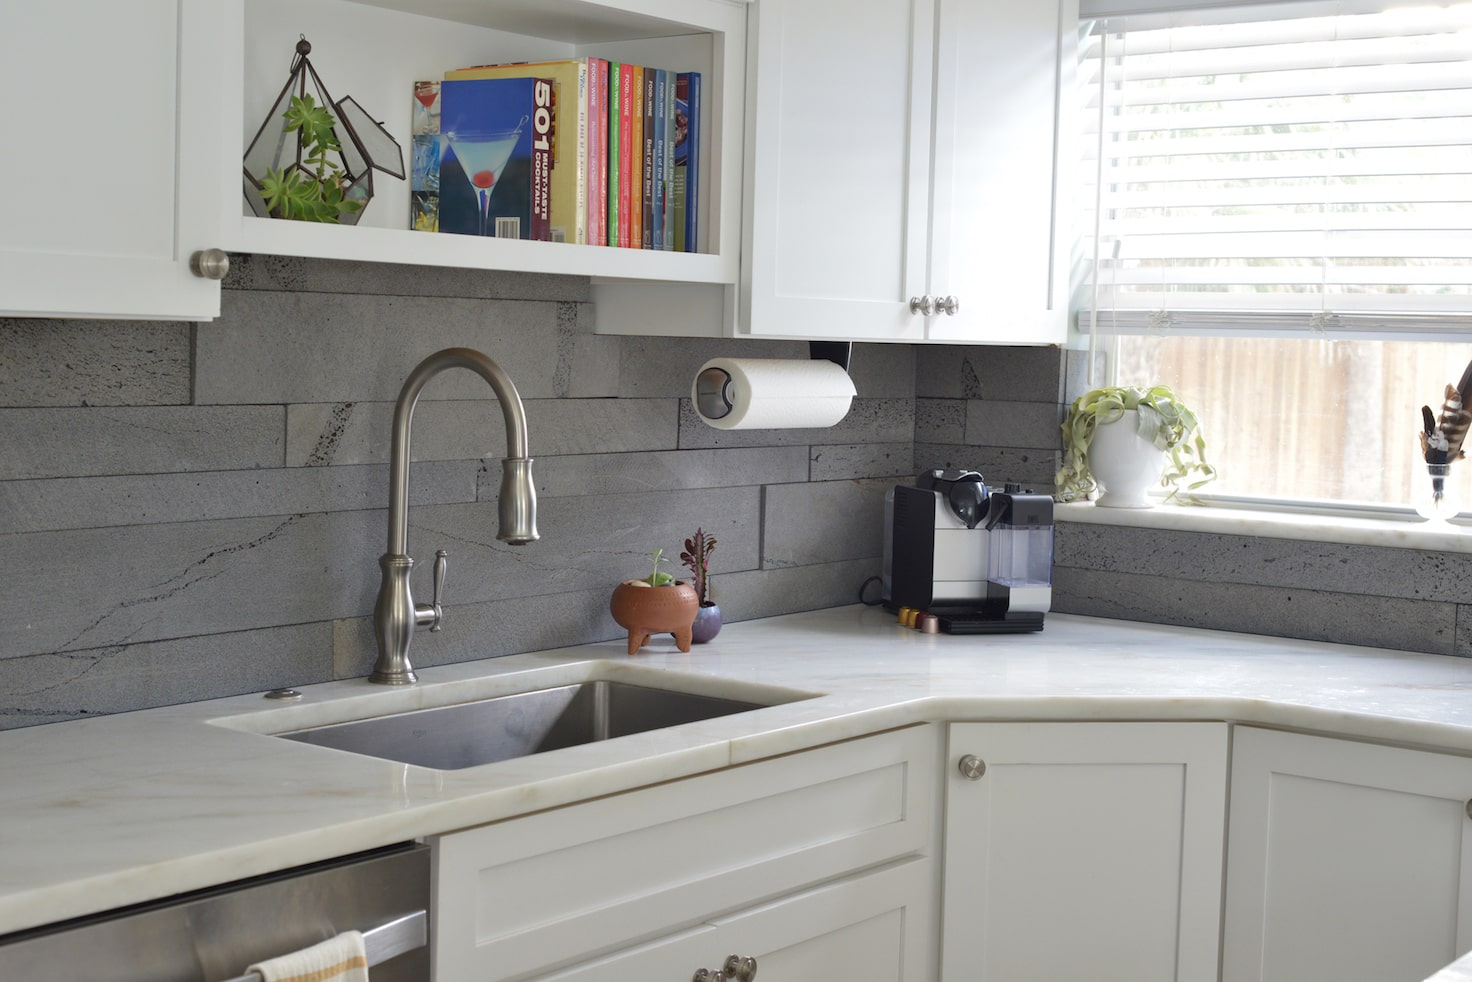 Norstone Platinum Planc Large Format Tile Product Launched in 2018 used on a modern kitchen backsplash